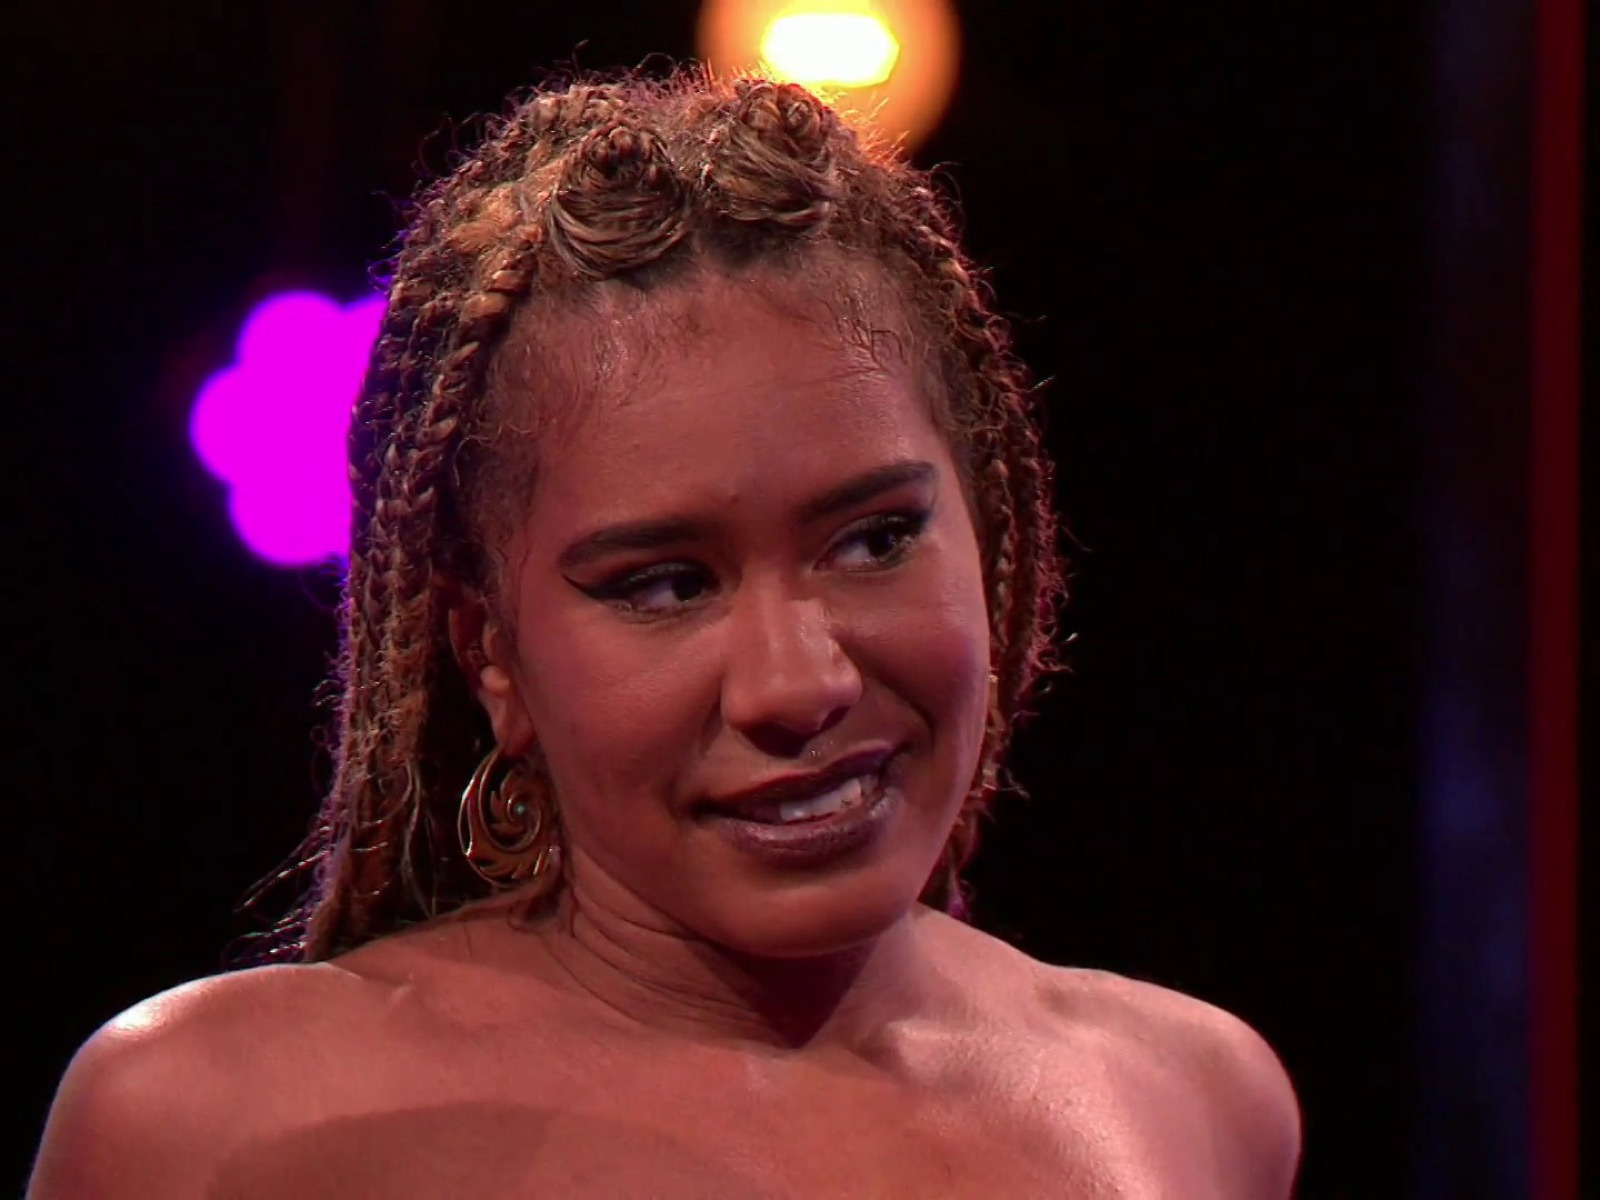 Prime Video: Naked Attraction - Season 3